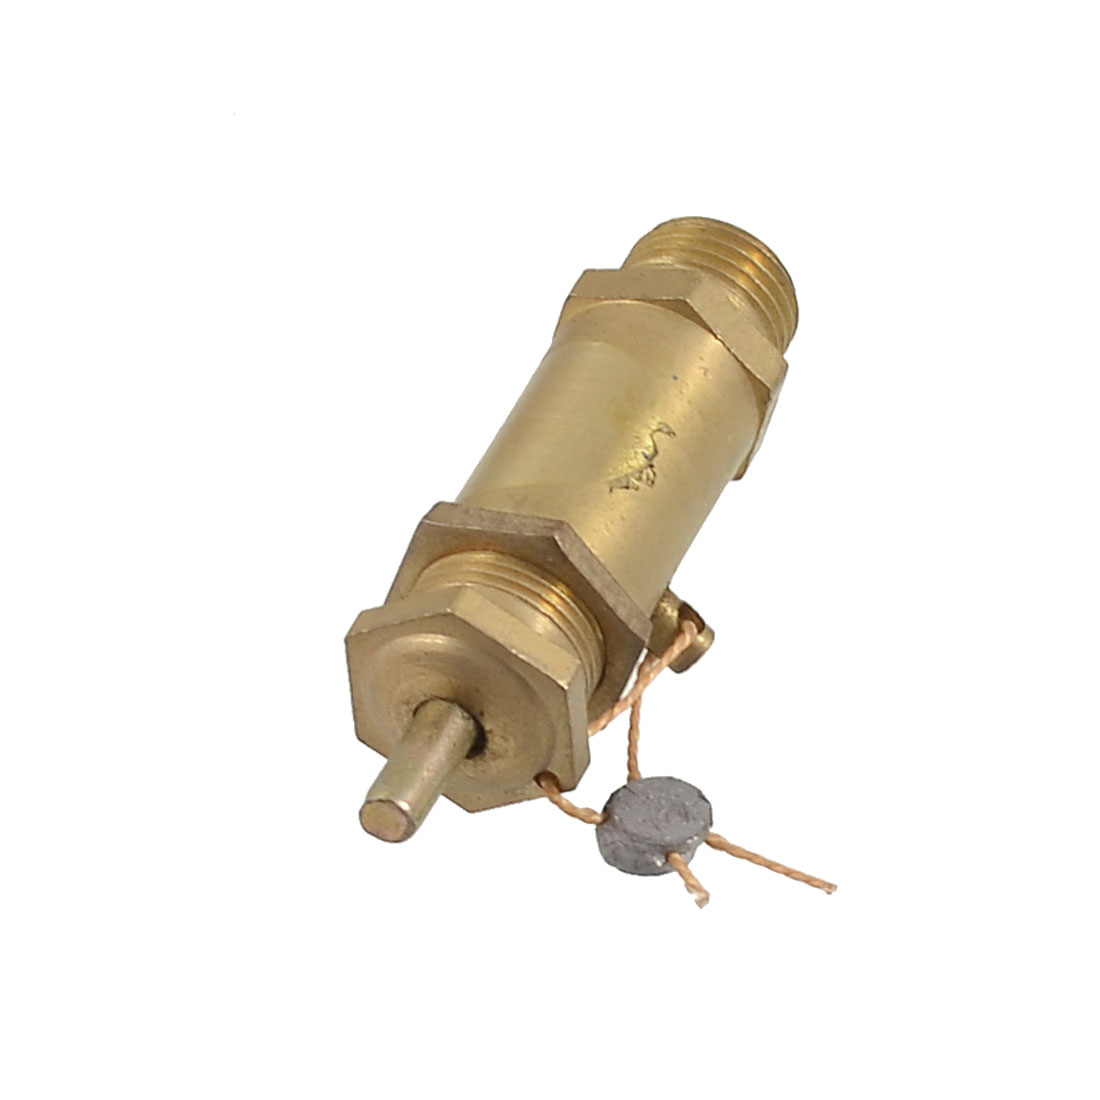 Gold Tone Metal 13mm Male Thread Air Compressor Safety Relief Valve